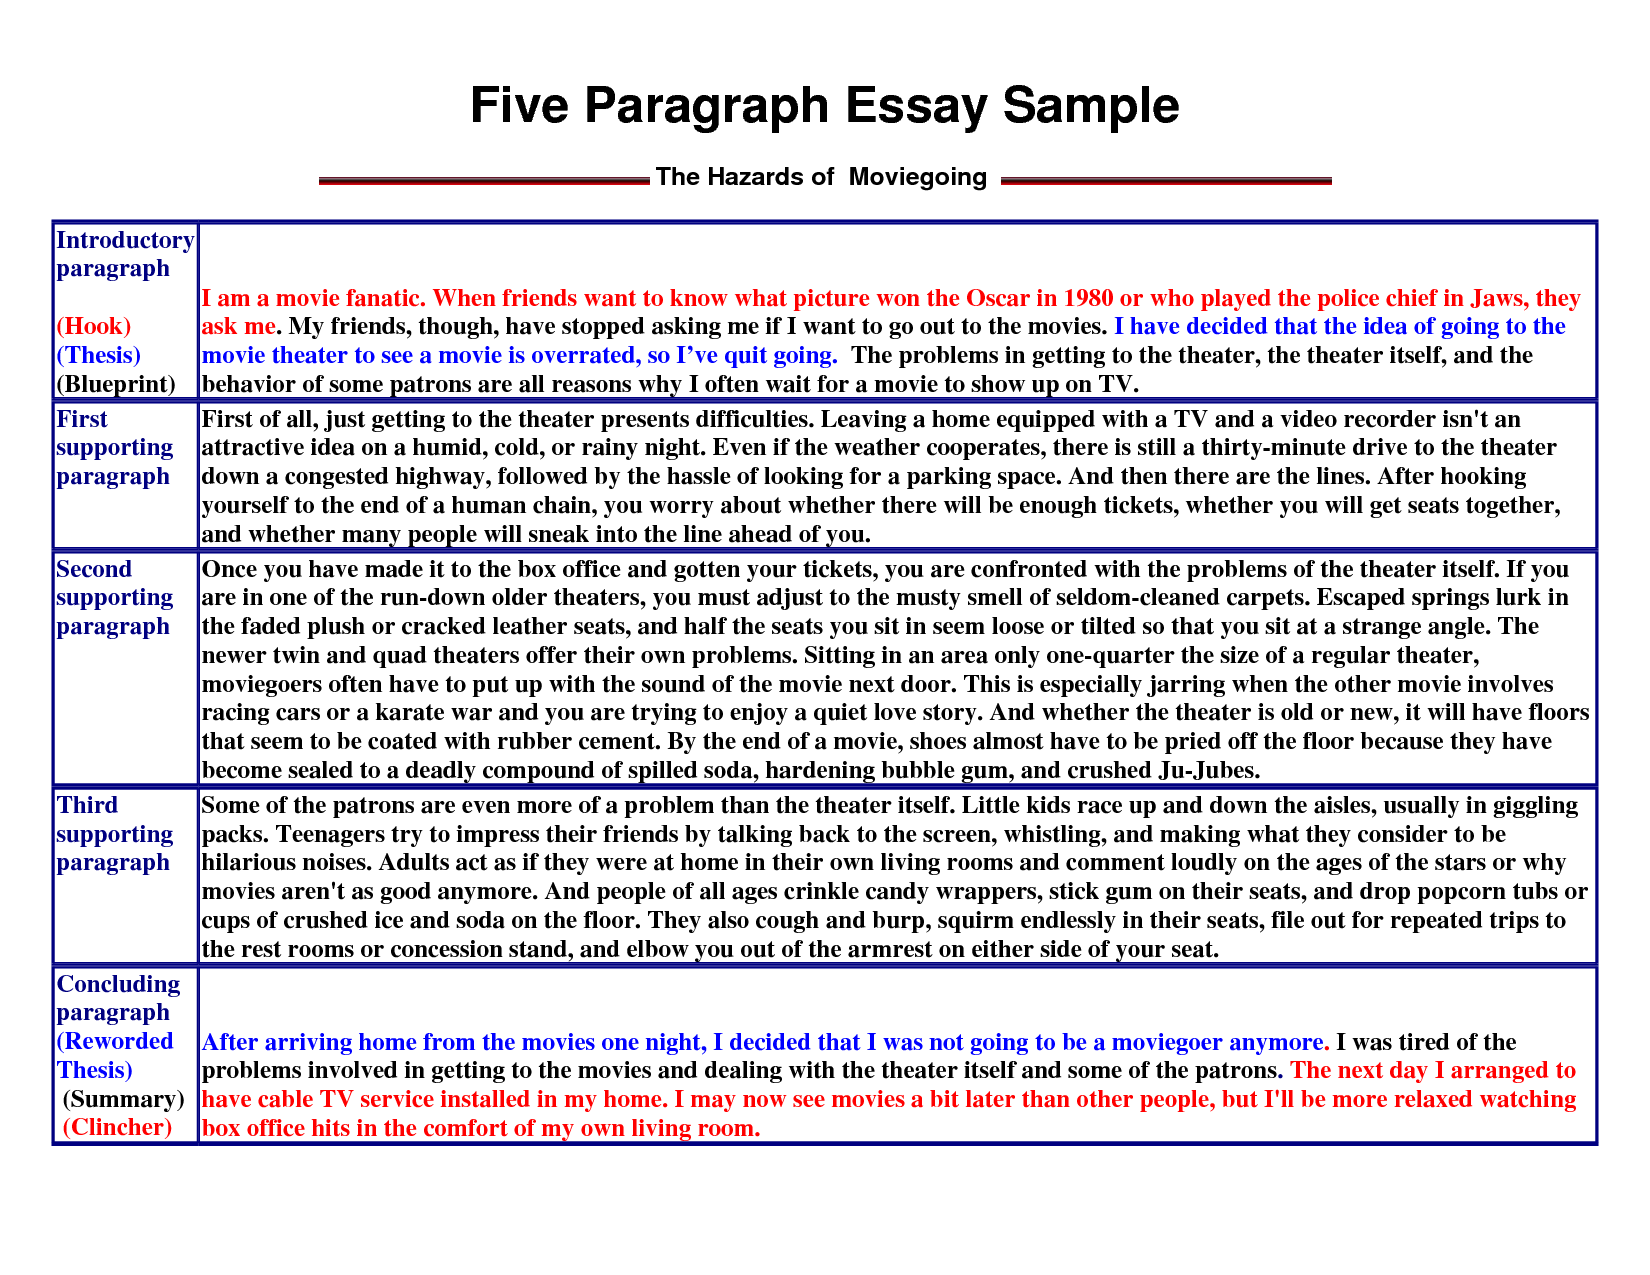 008 Essay Example Sample Stupendous 5 Paragraph Camping Pdf For 4th Grade Full